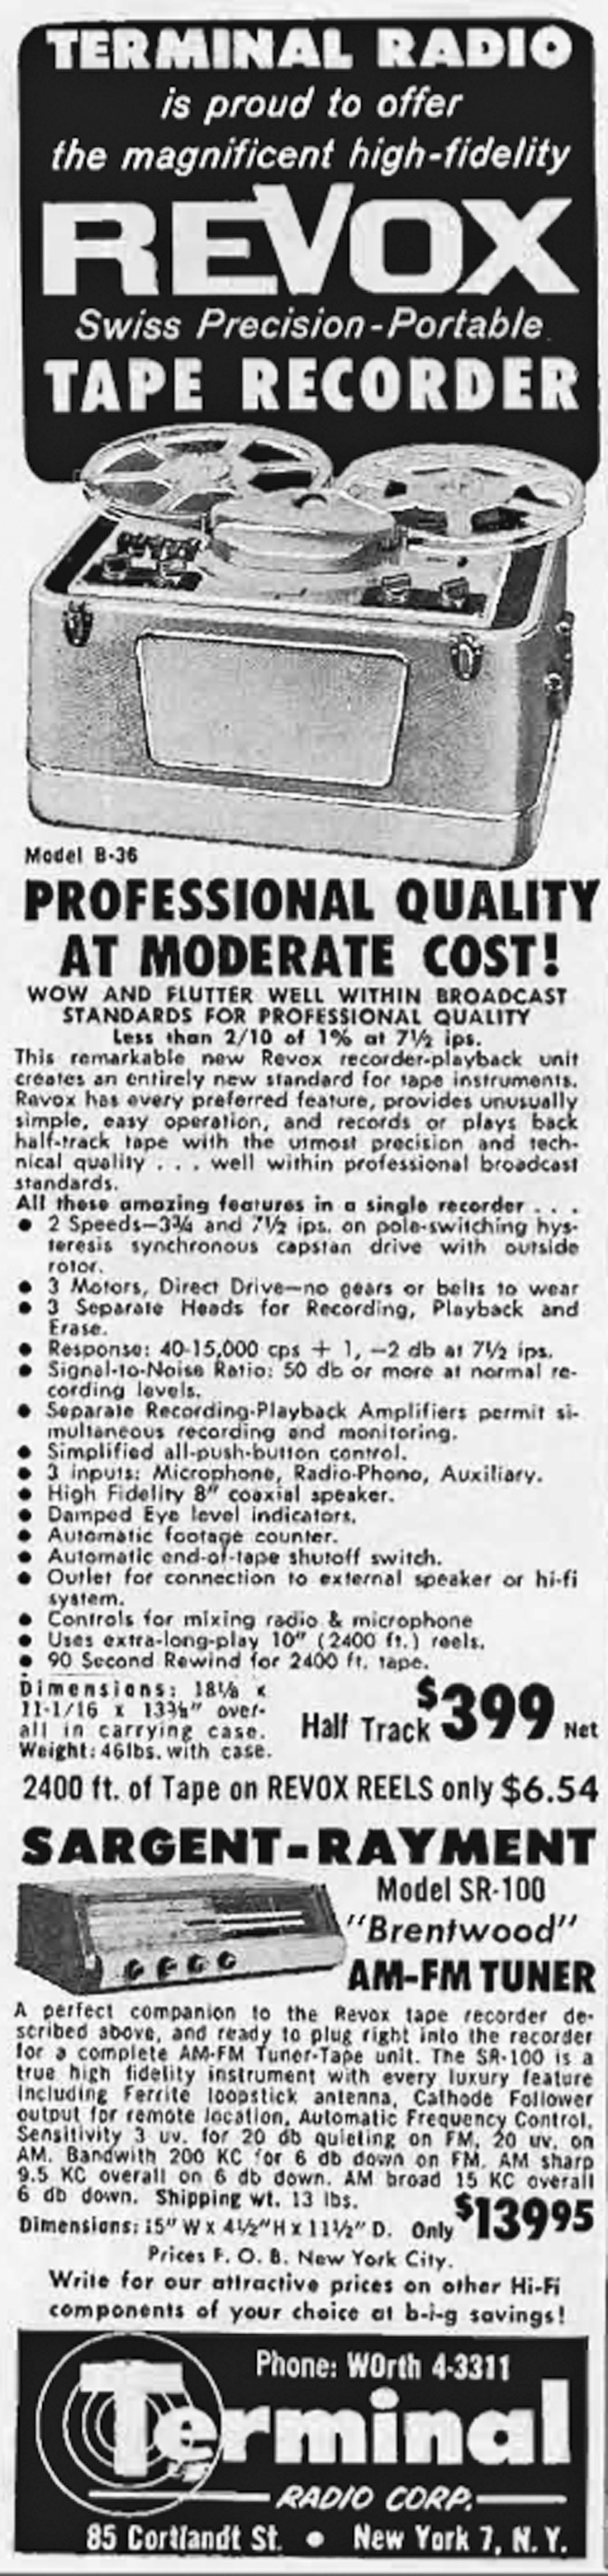 1957 ad for the ReVox B36 reel to reel tape recorder in Reel2ReelTexas.com's vintage recording collection